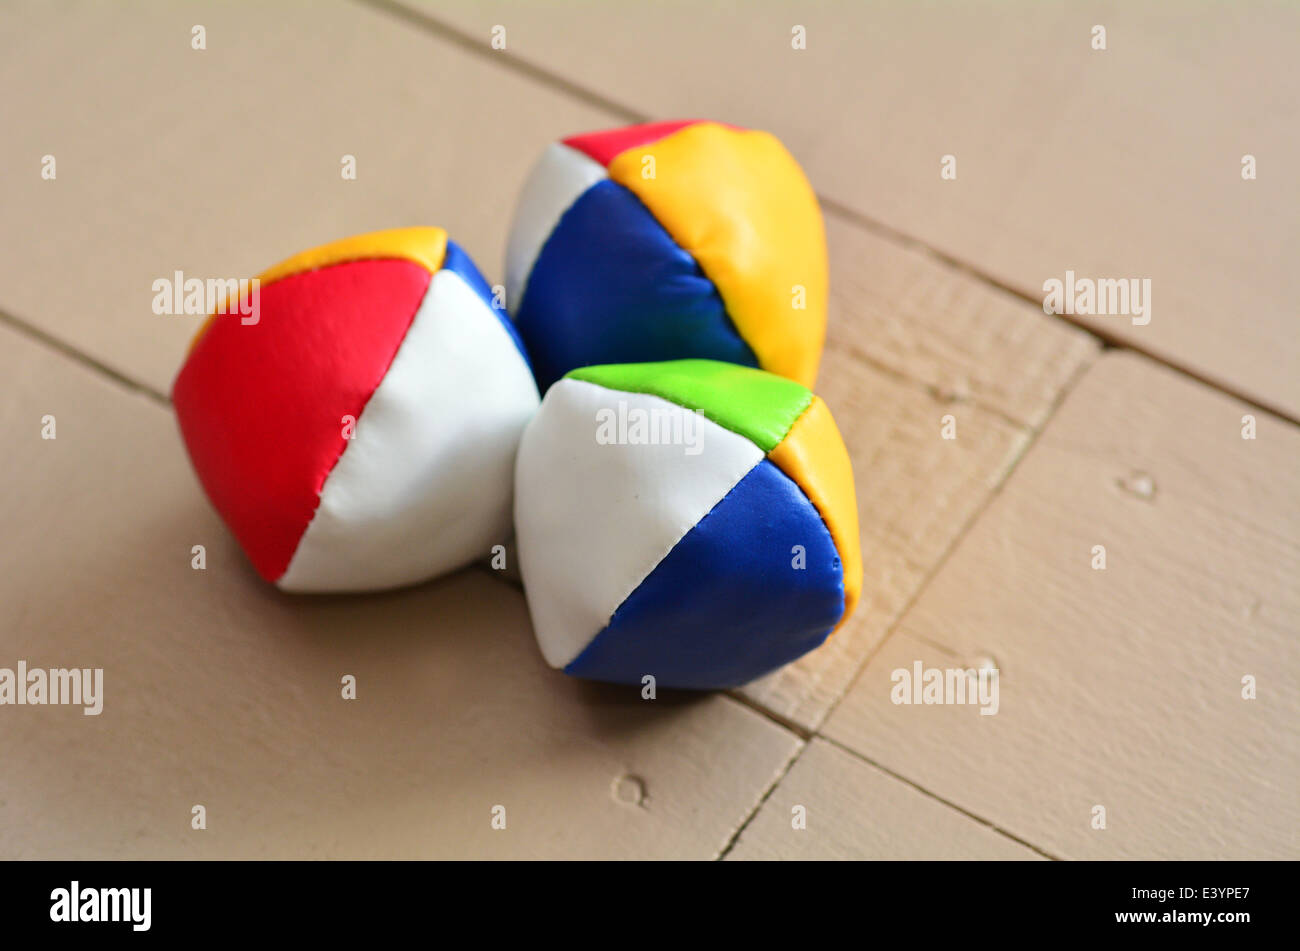 Set of three (3) Juggling balls on a wooden floor. concept photo, copy space - Stock Image